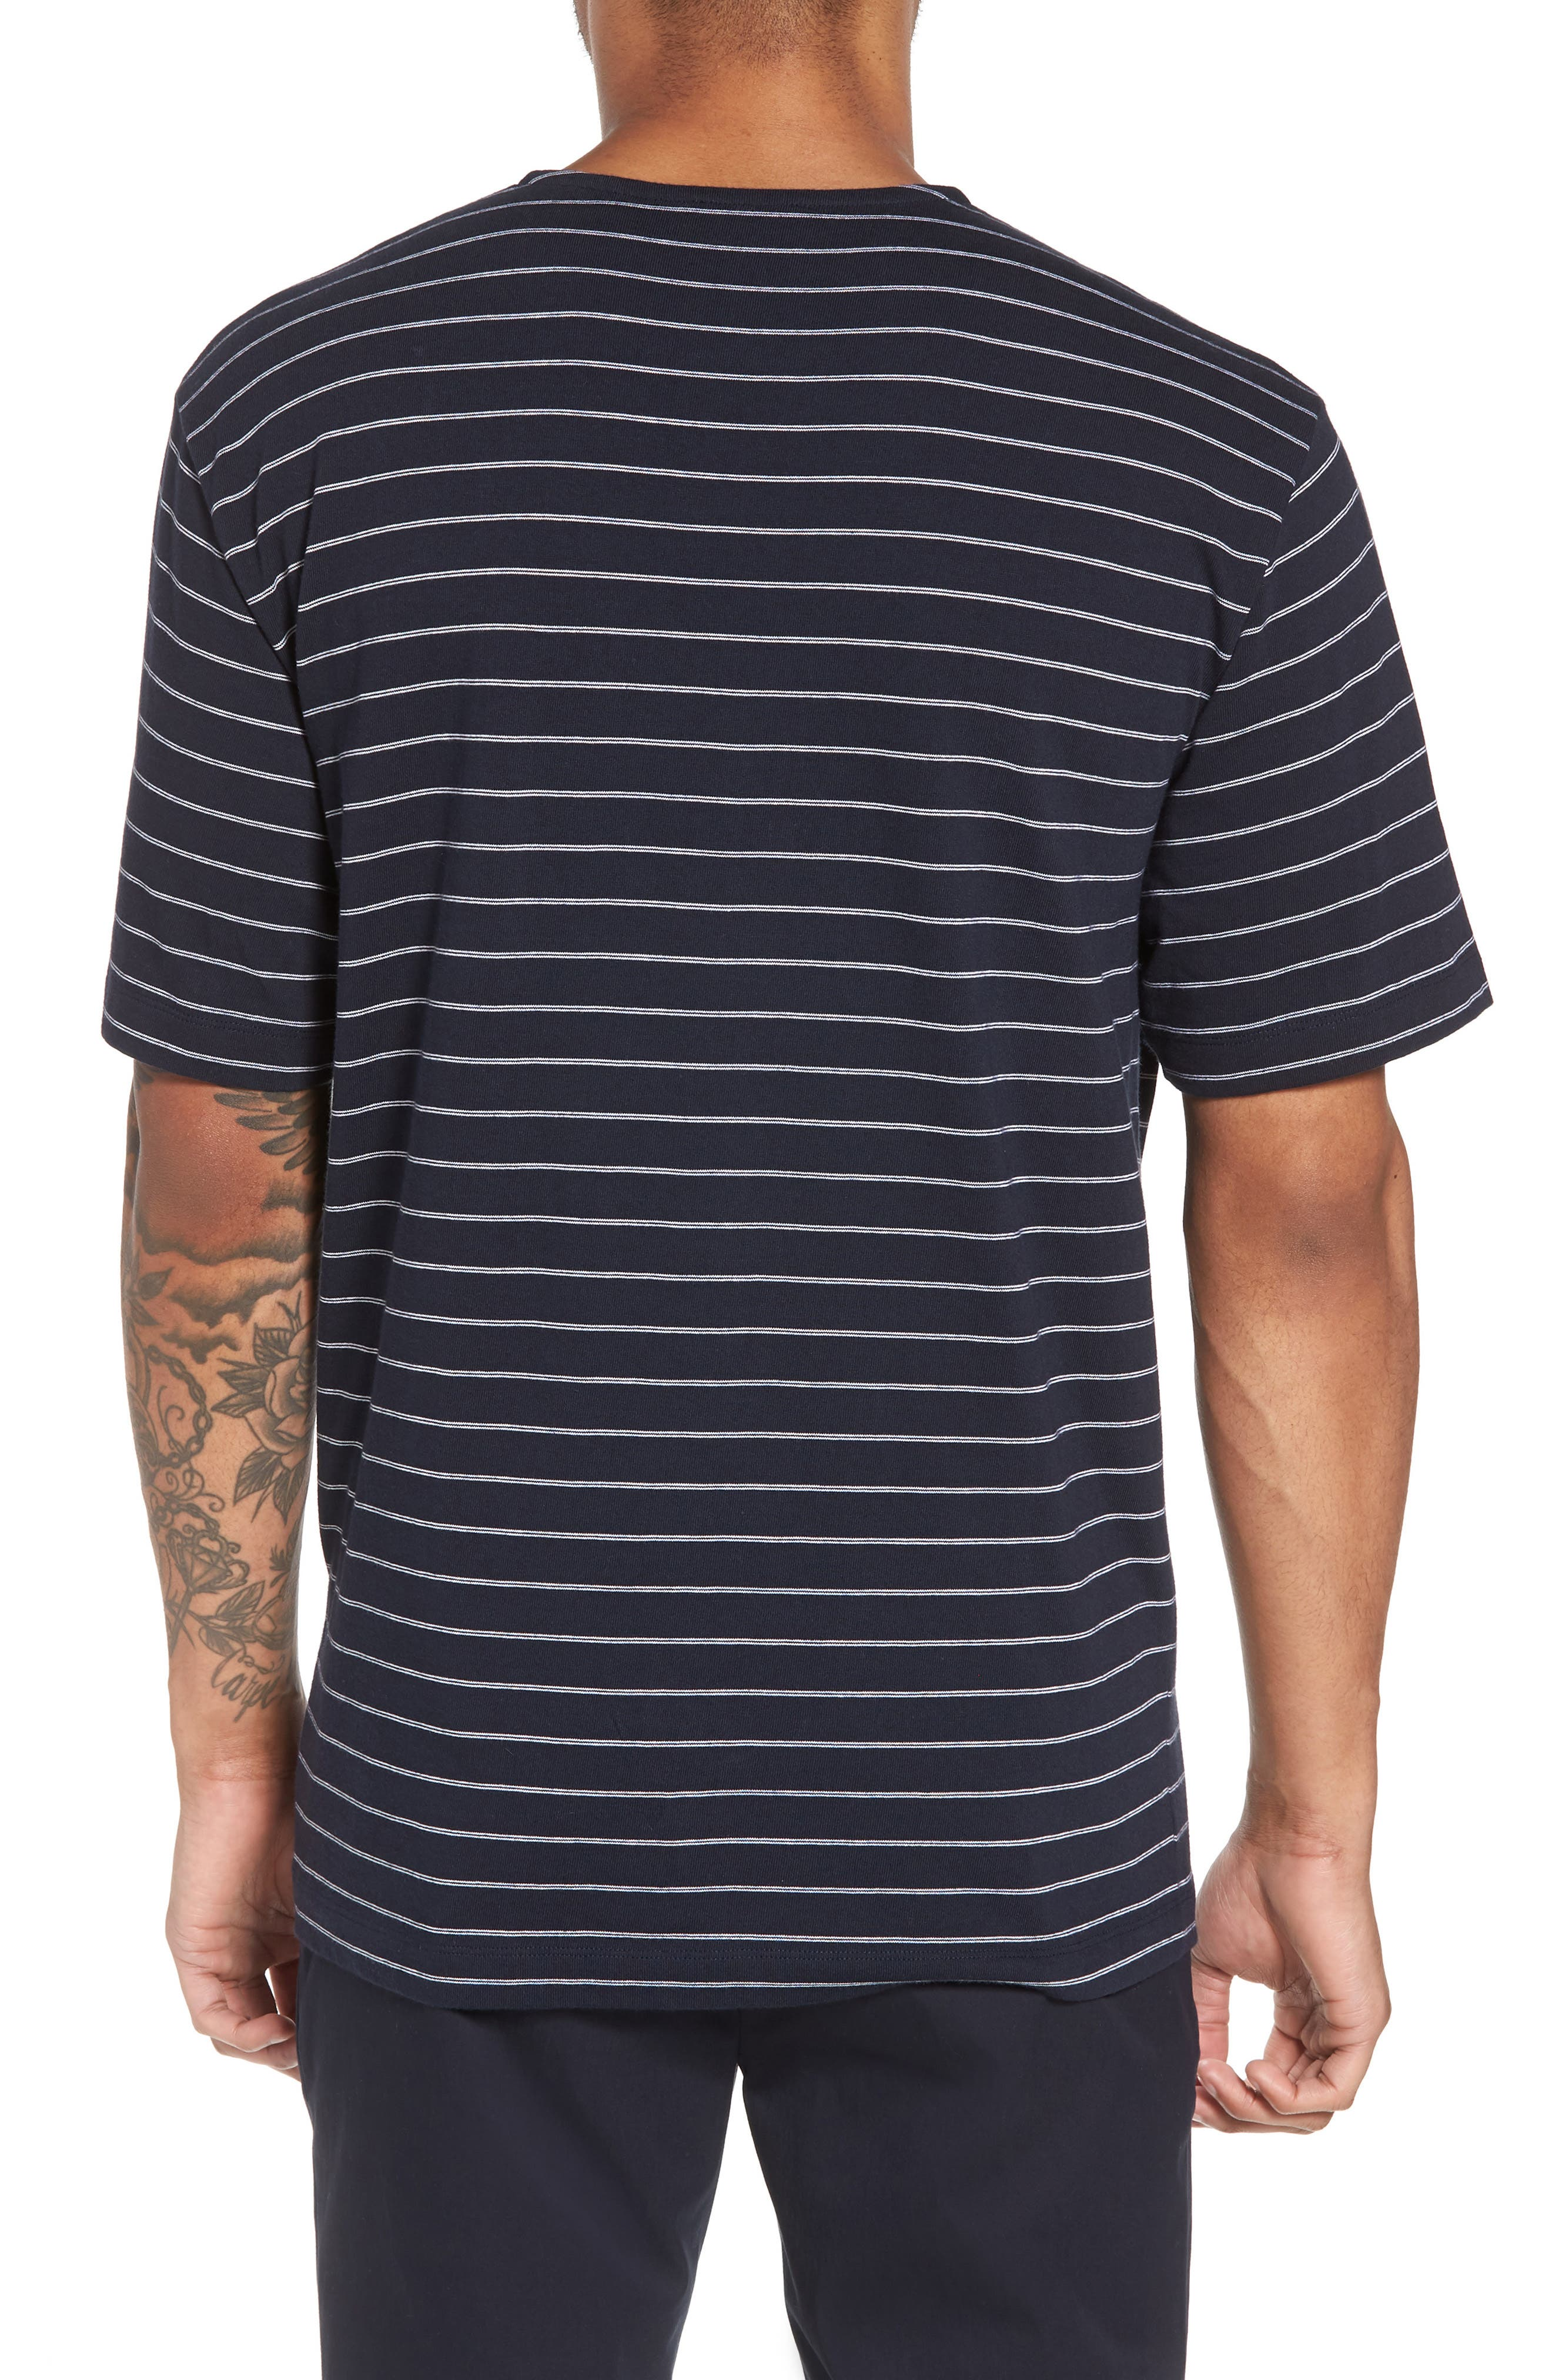 Alternate Image 2  - Theory Relaxed Stripe Henley